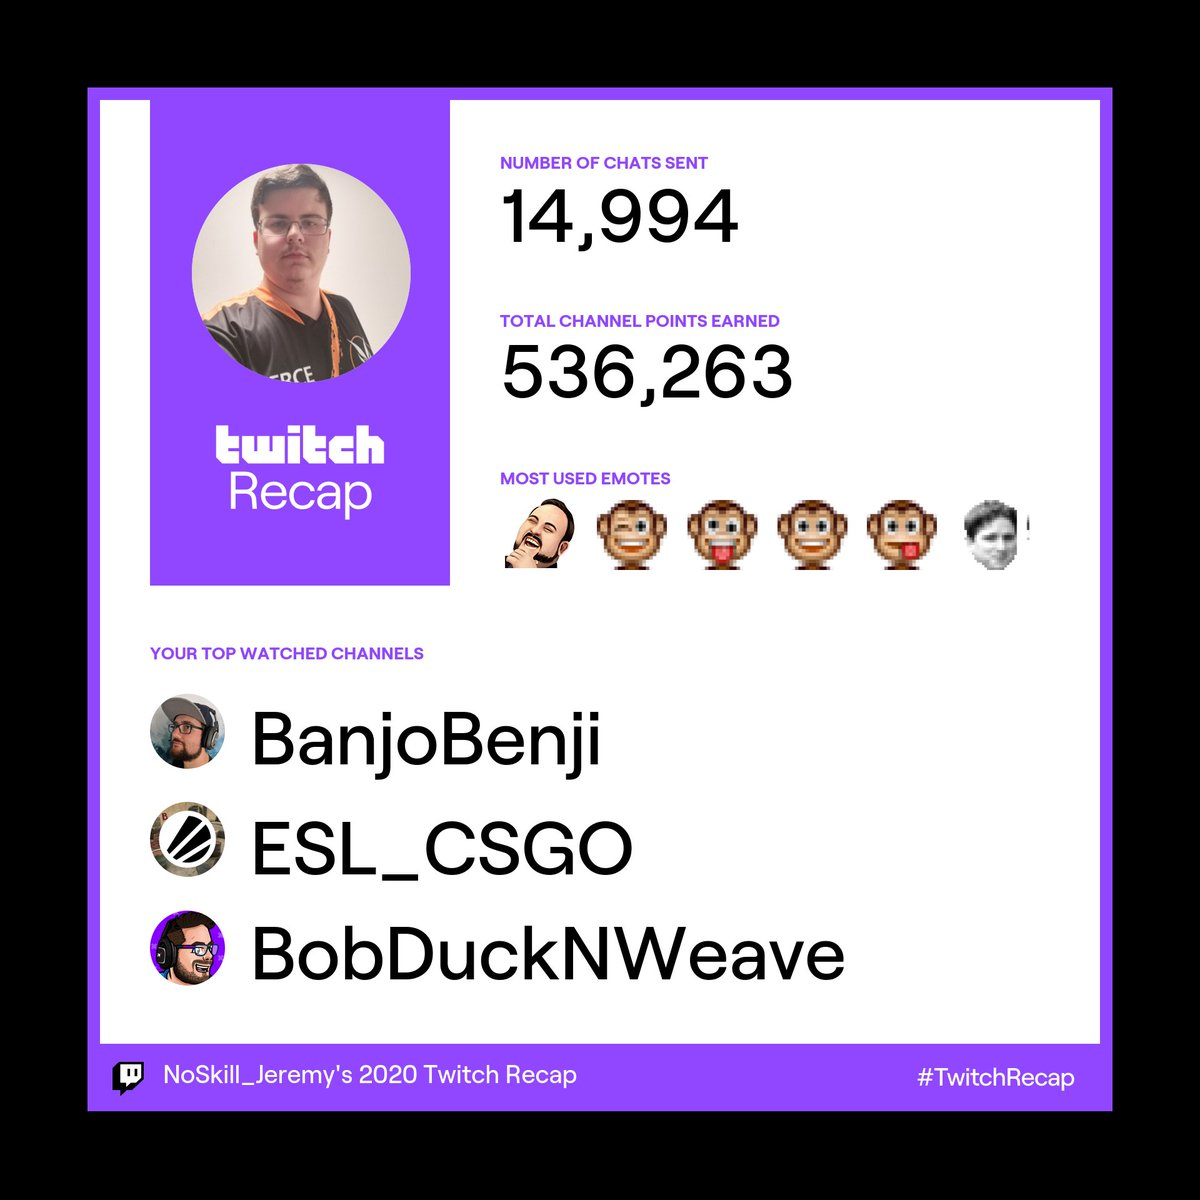 My #TwitchRecap 2020 . Let's hit 15k Messages this year? ;-)